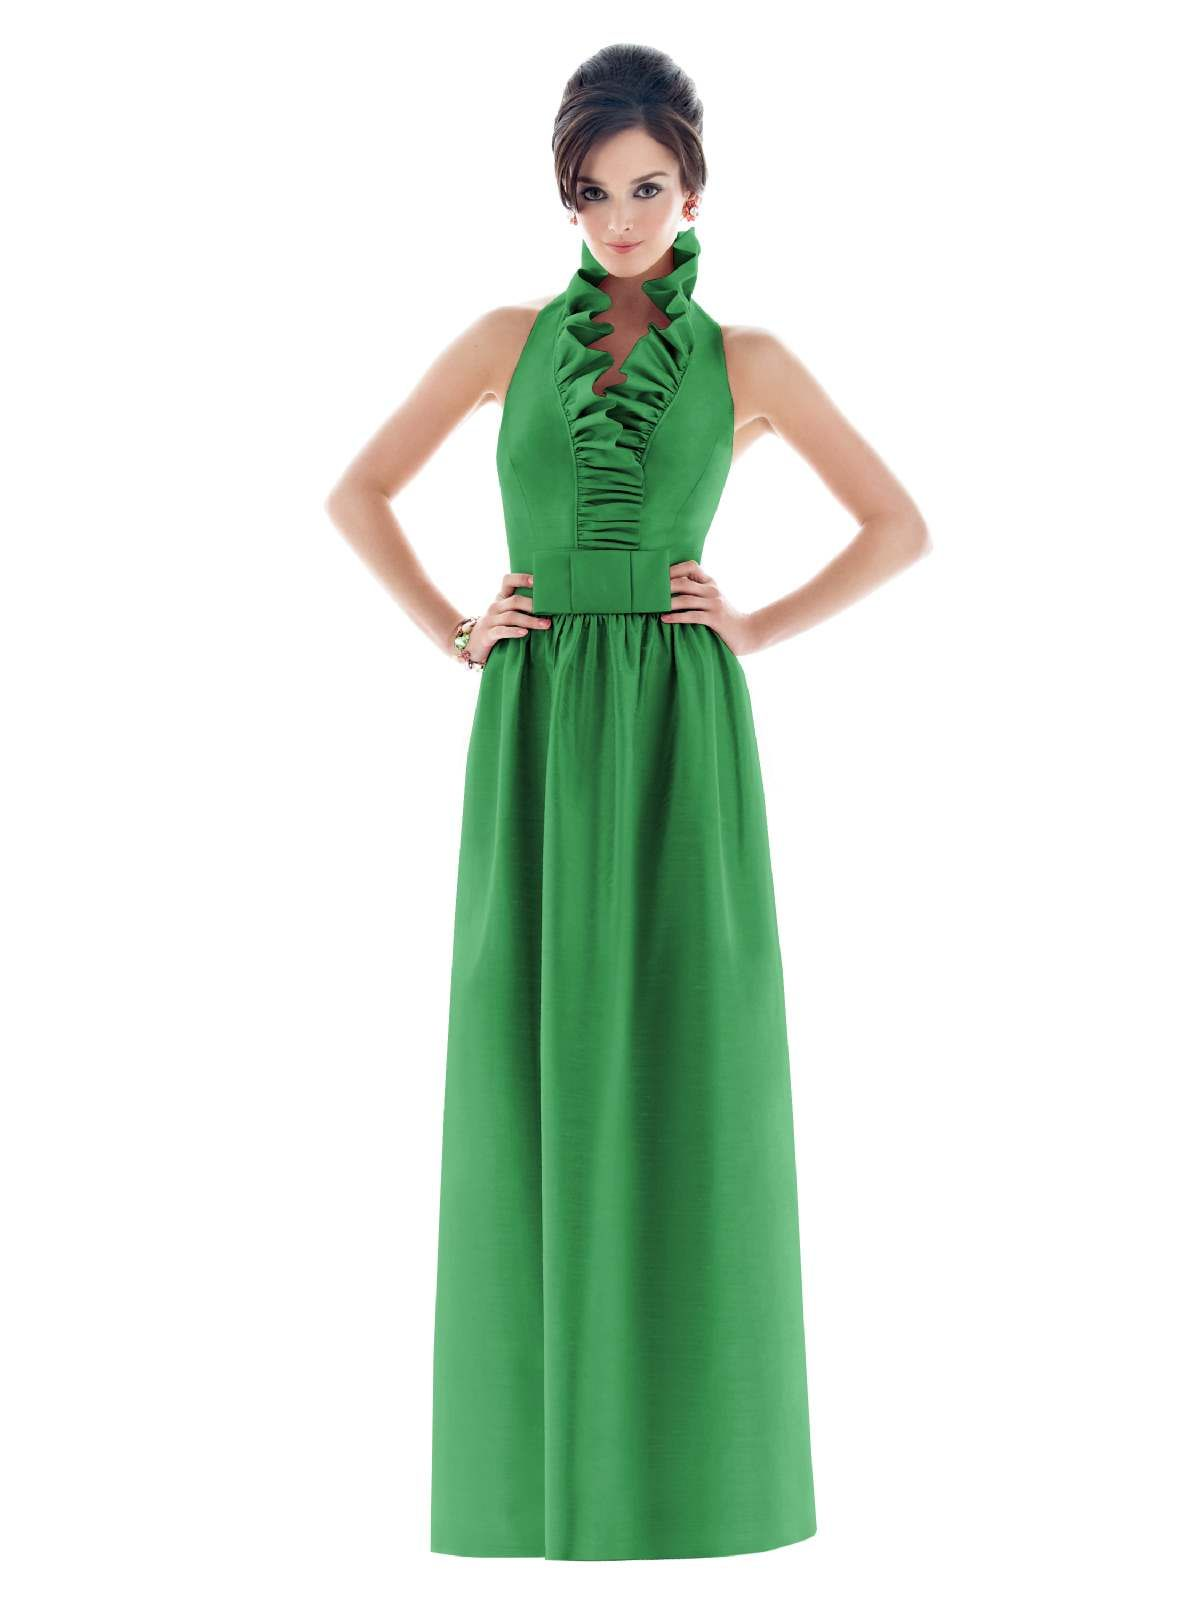 Alfred sung d469 bridesmaid dress alfred sung bridesmaid dresses alfred sung d469 bridesmaid dress ombrellifo Gallery